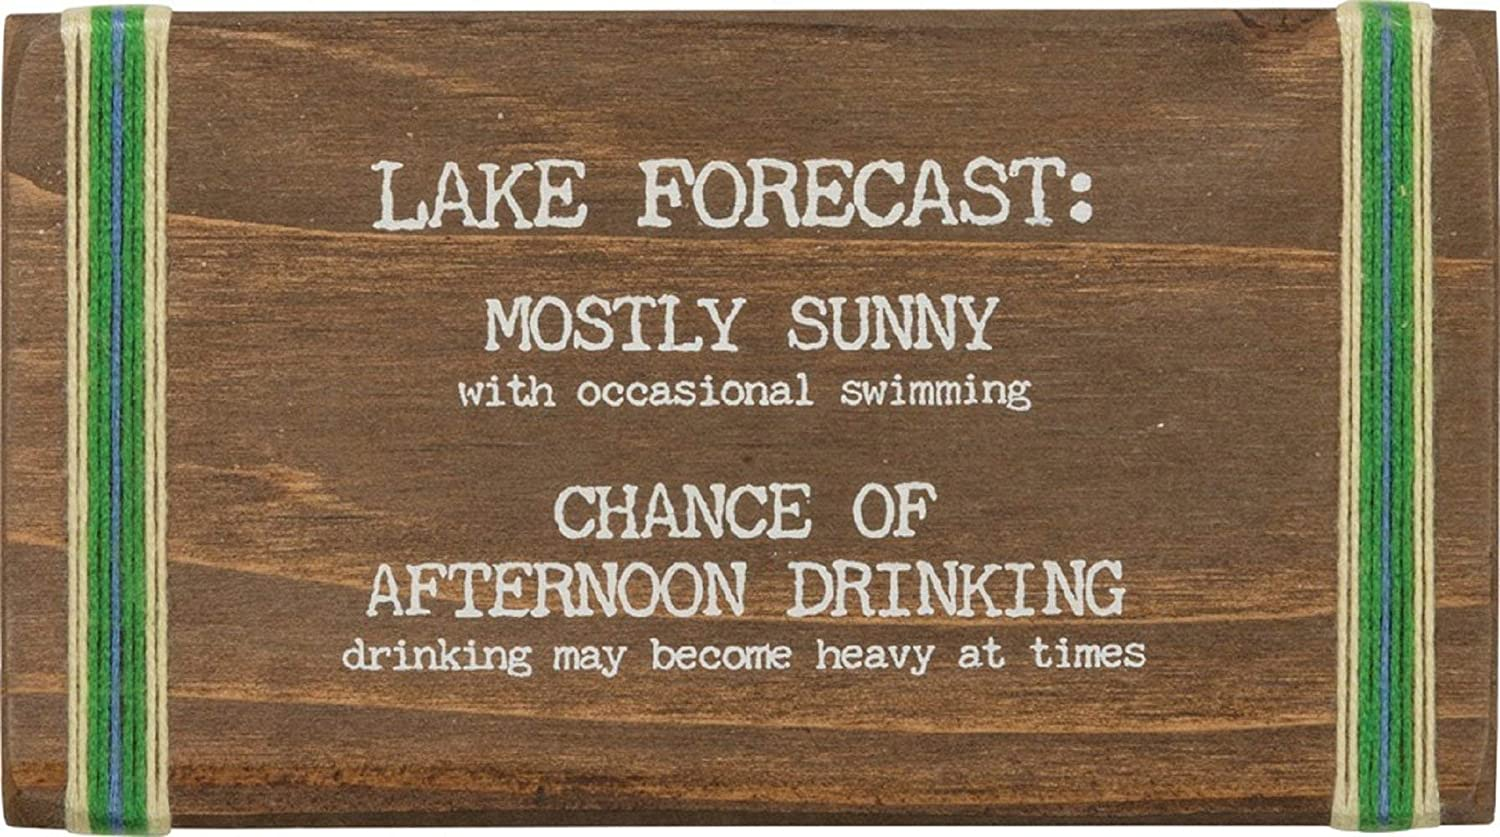 Primitives By In Outstanding stock Kathy Stitched Block Sunny Forecast Lake Mostly